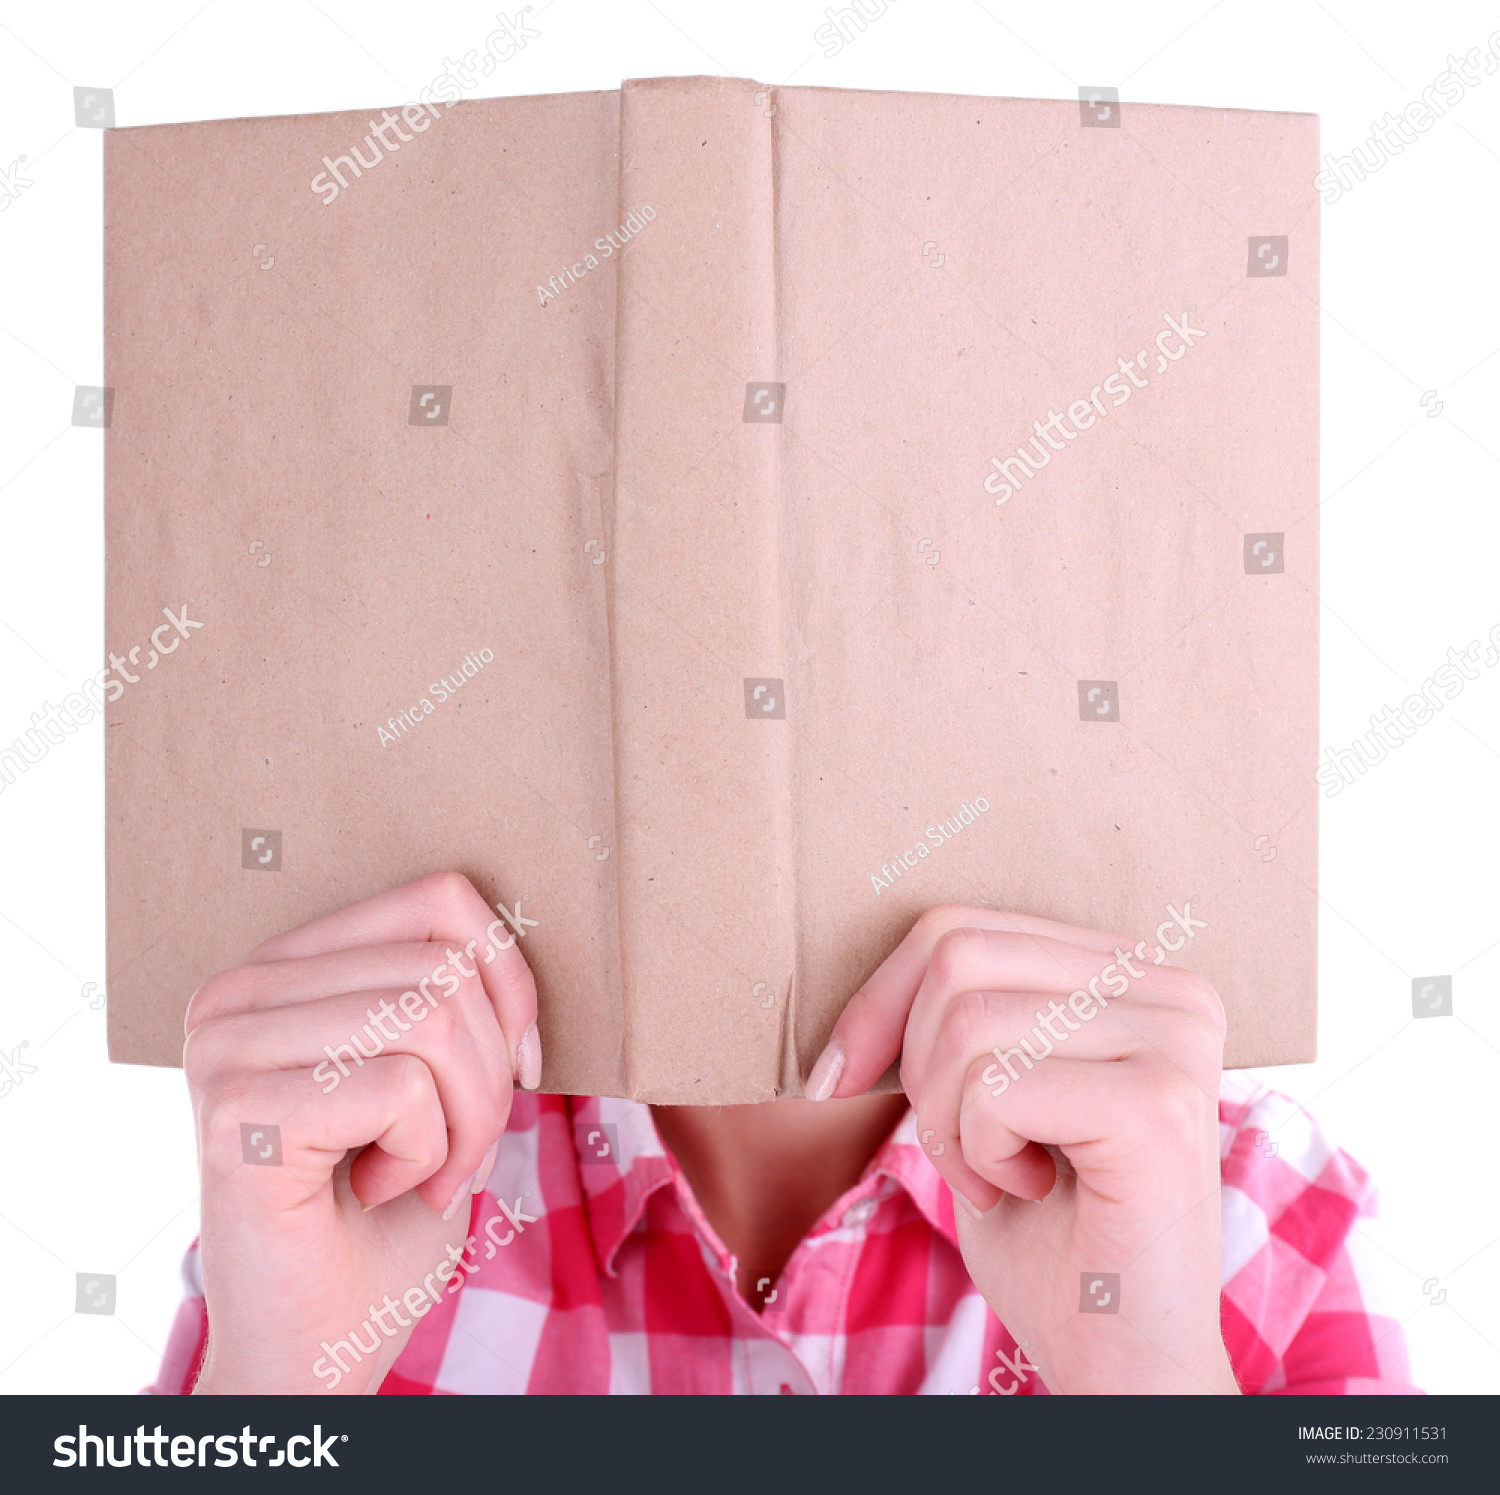 Book Covering Face : Girl reading book covering her face isolated on white